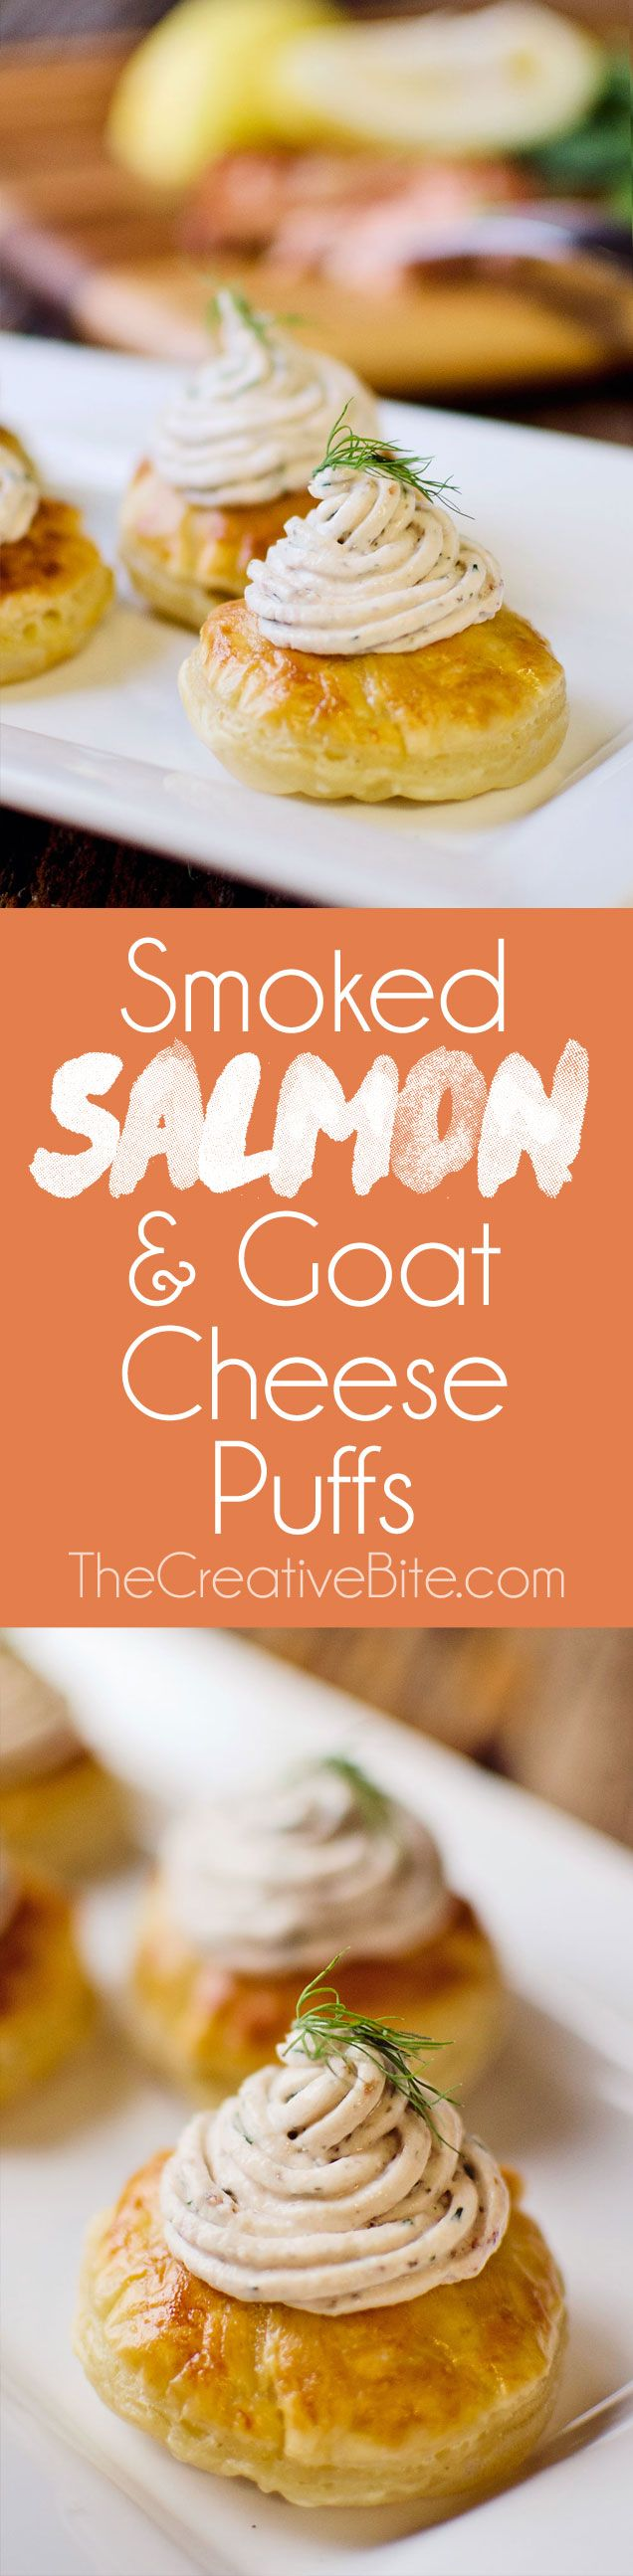 Smoked Salmon and Goat Cheese Puffs are a fantastic little appetizers with a light and flakey piece of puff pastry topped with a creamy smoked salmon, goat cheese and lemon spread. http://www.thecreativebite.com/smoked-salmon-goat-cheese-puffs/?utm_campaign=coschedule&utm_source=pinterest&utm_medium=Danielle%20%7C%20The%20Creative%20Bite&utm_content=Smoked%20Salmon%20and%20Goat%20Cheese%20Puffs